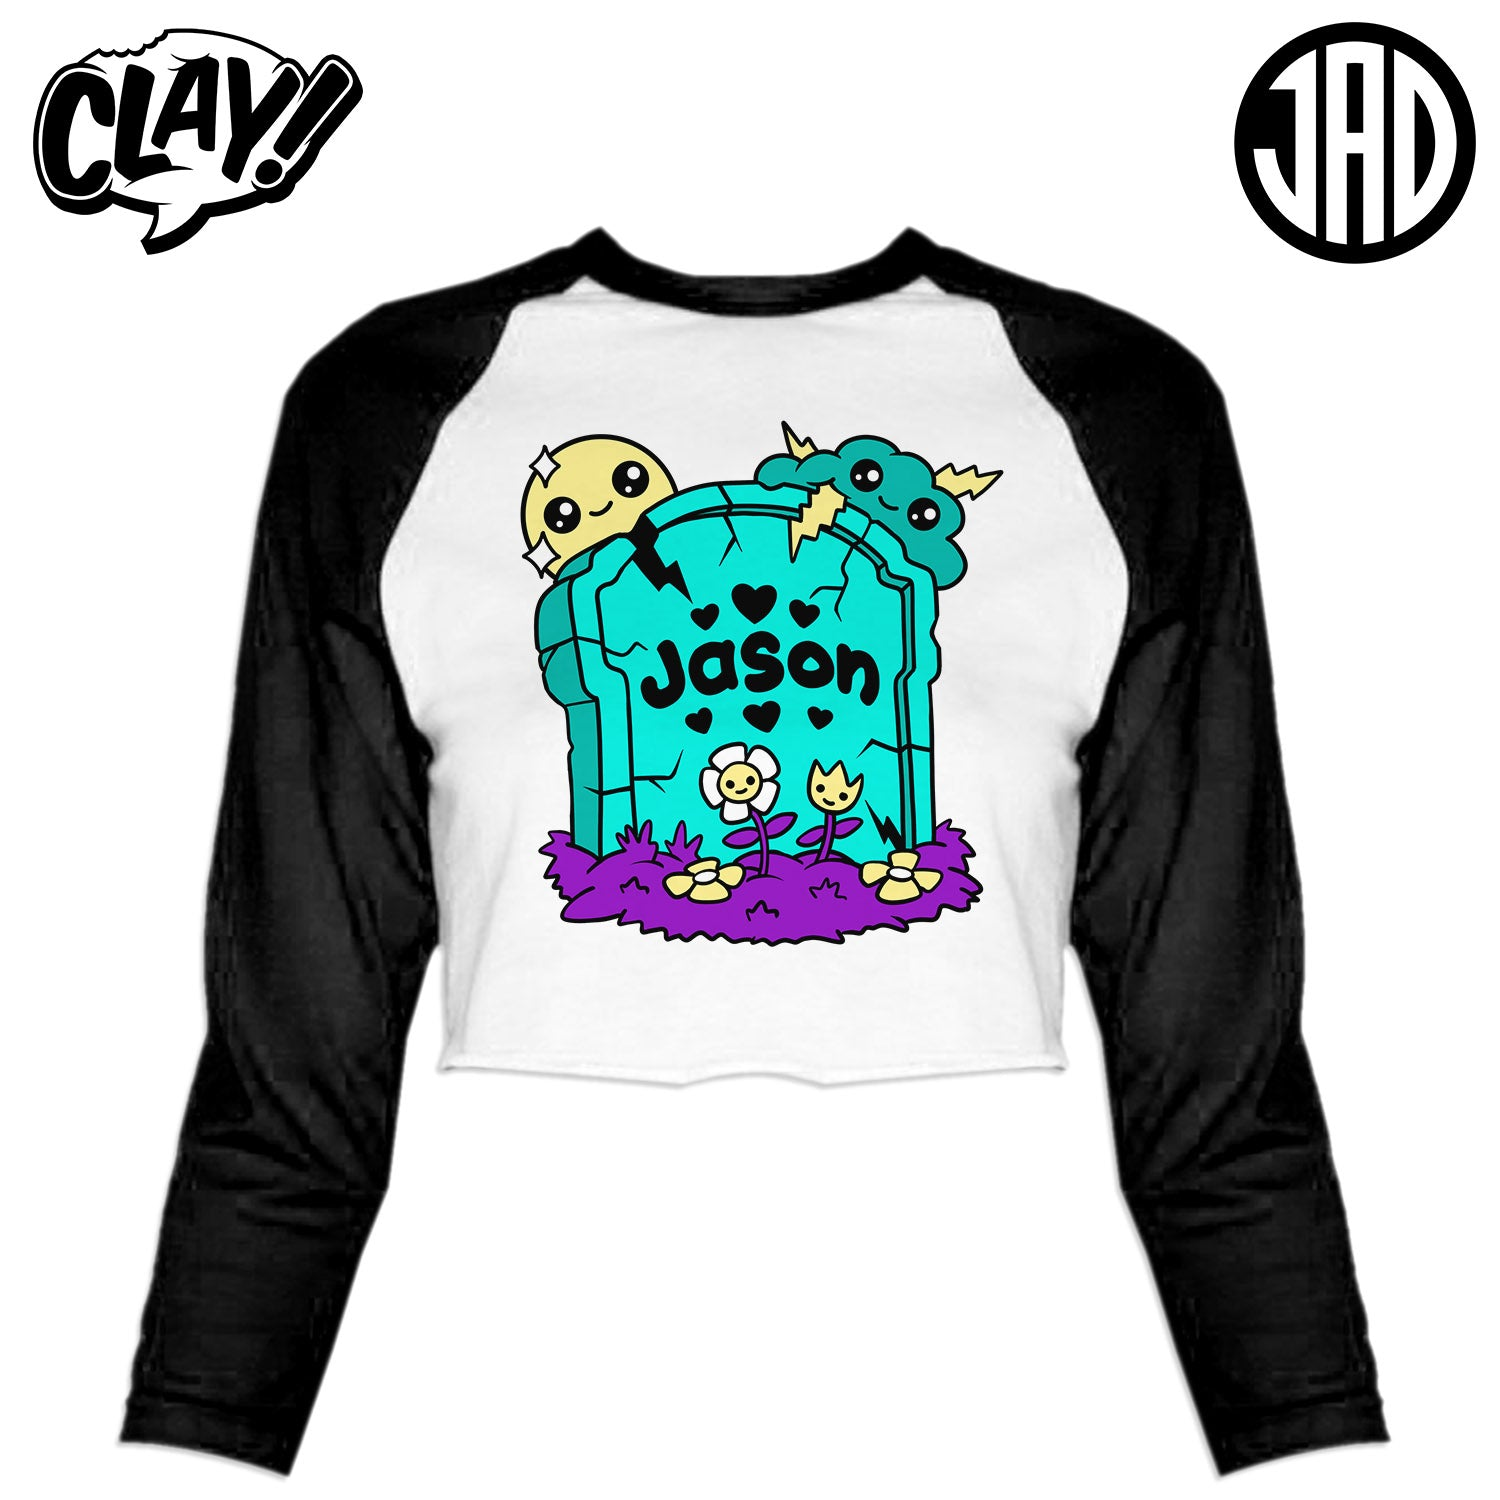 RIP Jason NES - Women's Cropped Baseball Tee